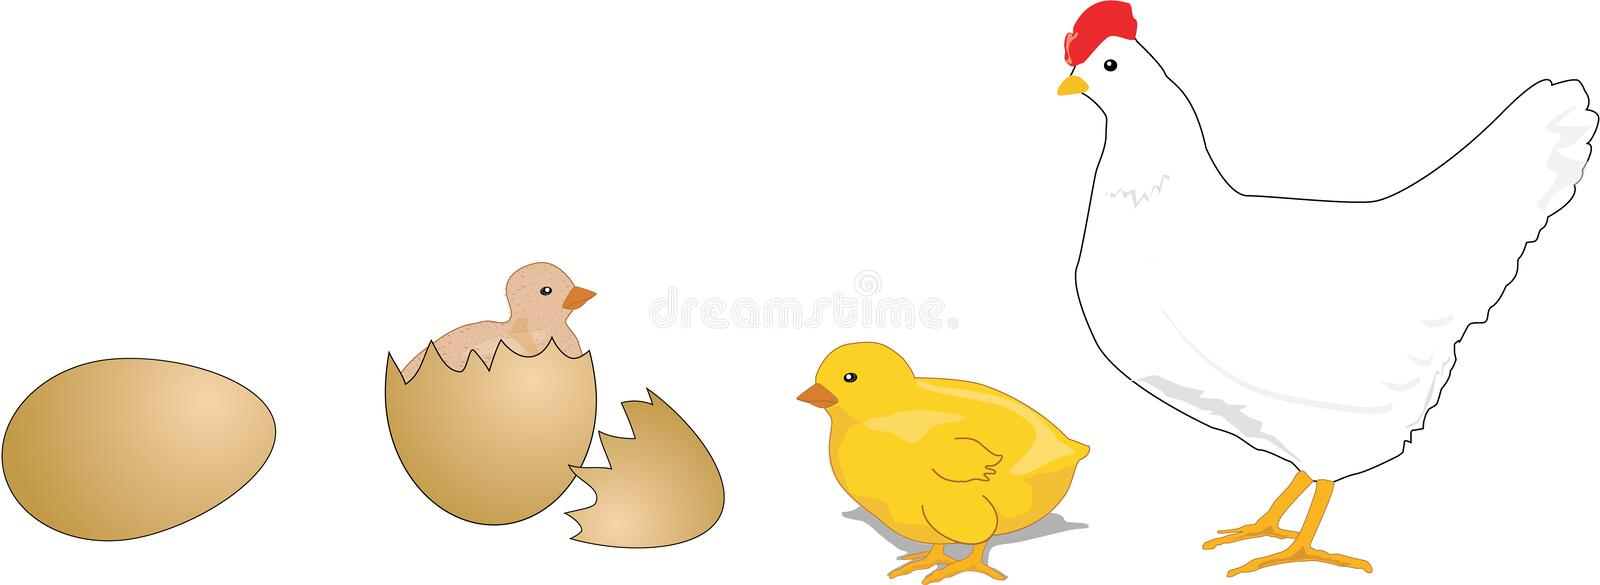 Download Chicken life cycle stock illustration. Image of eggs, grow - 1011273